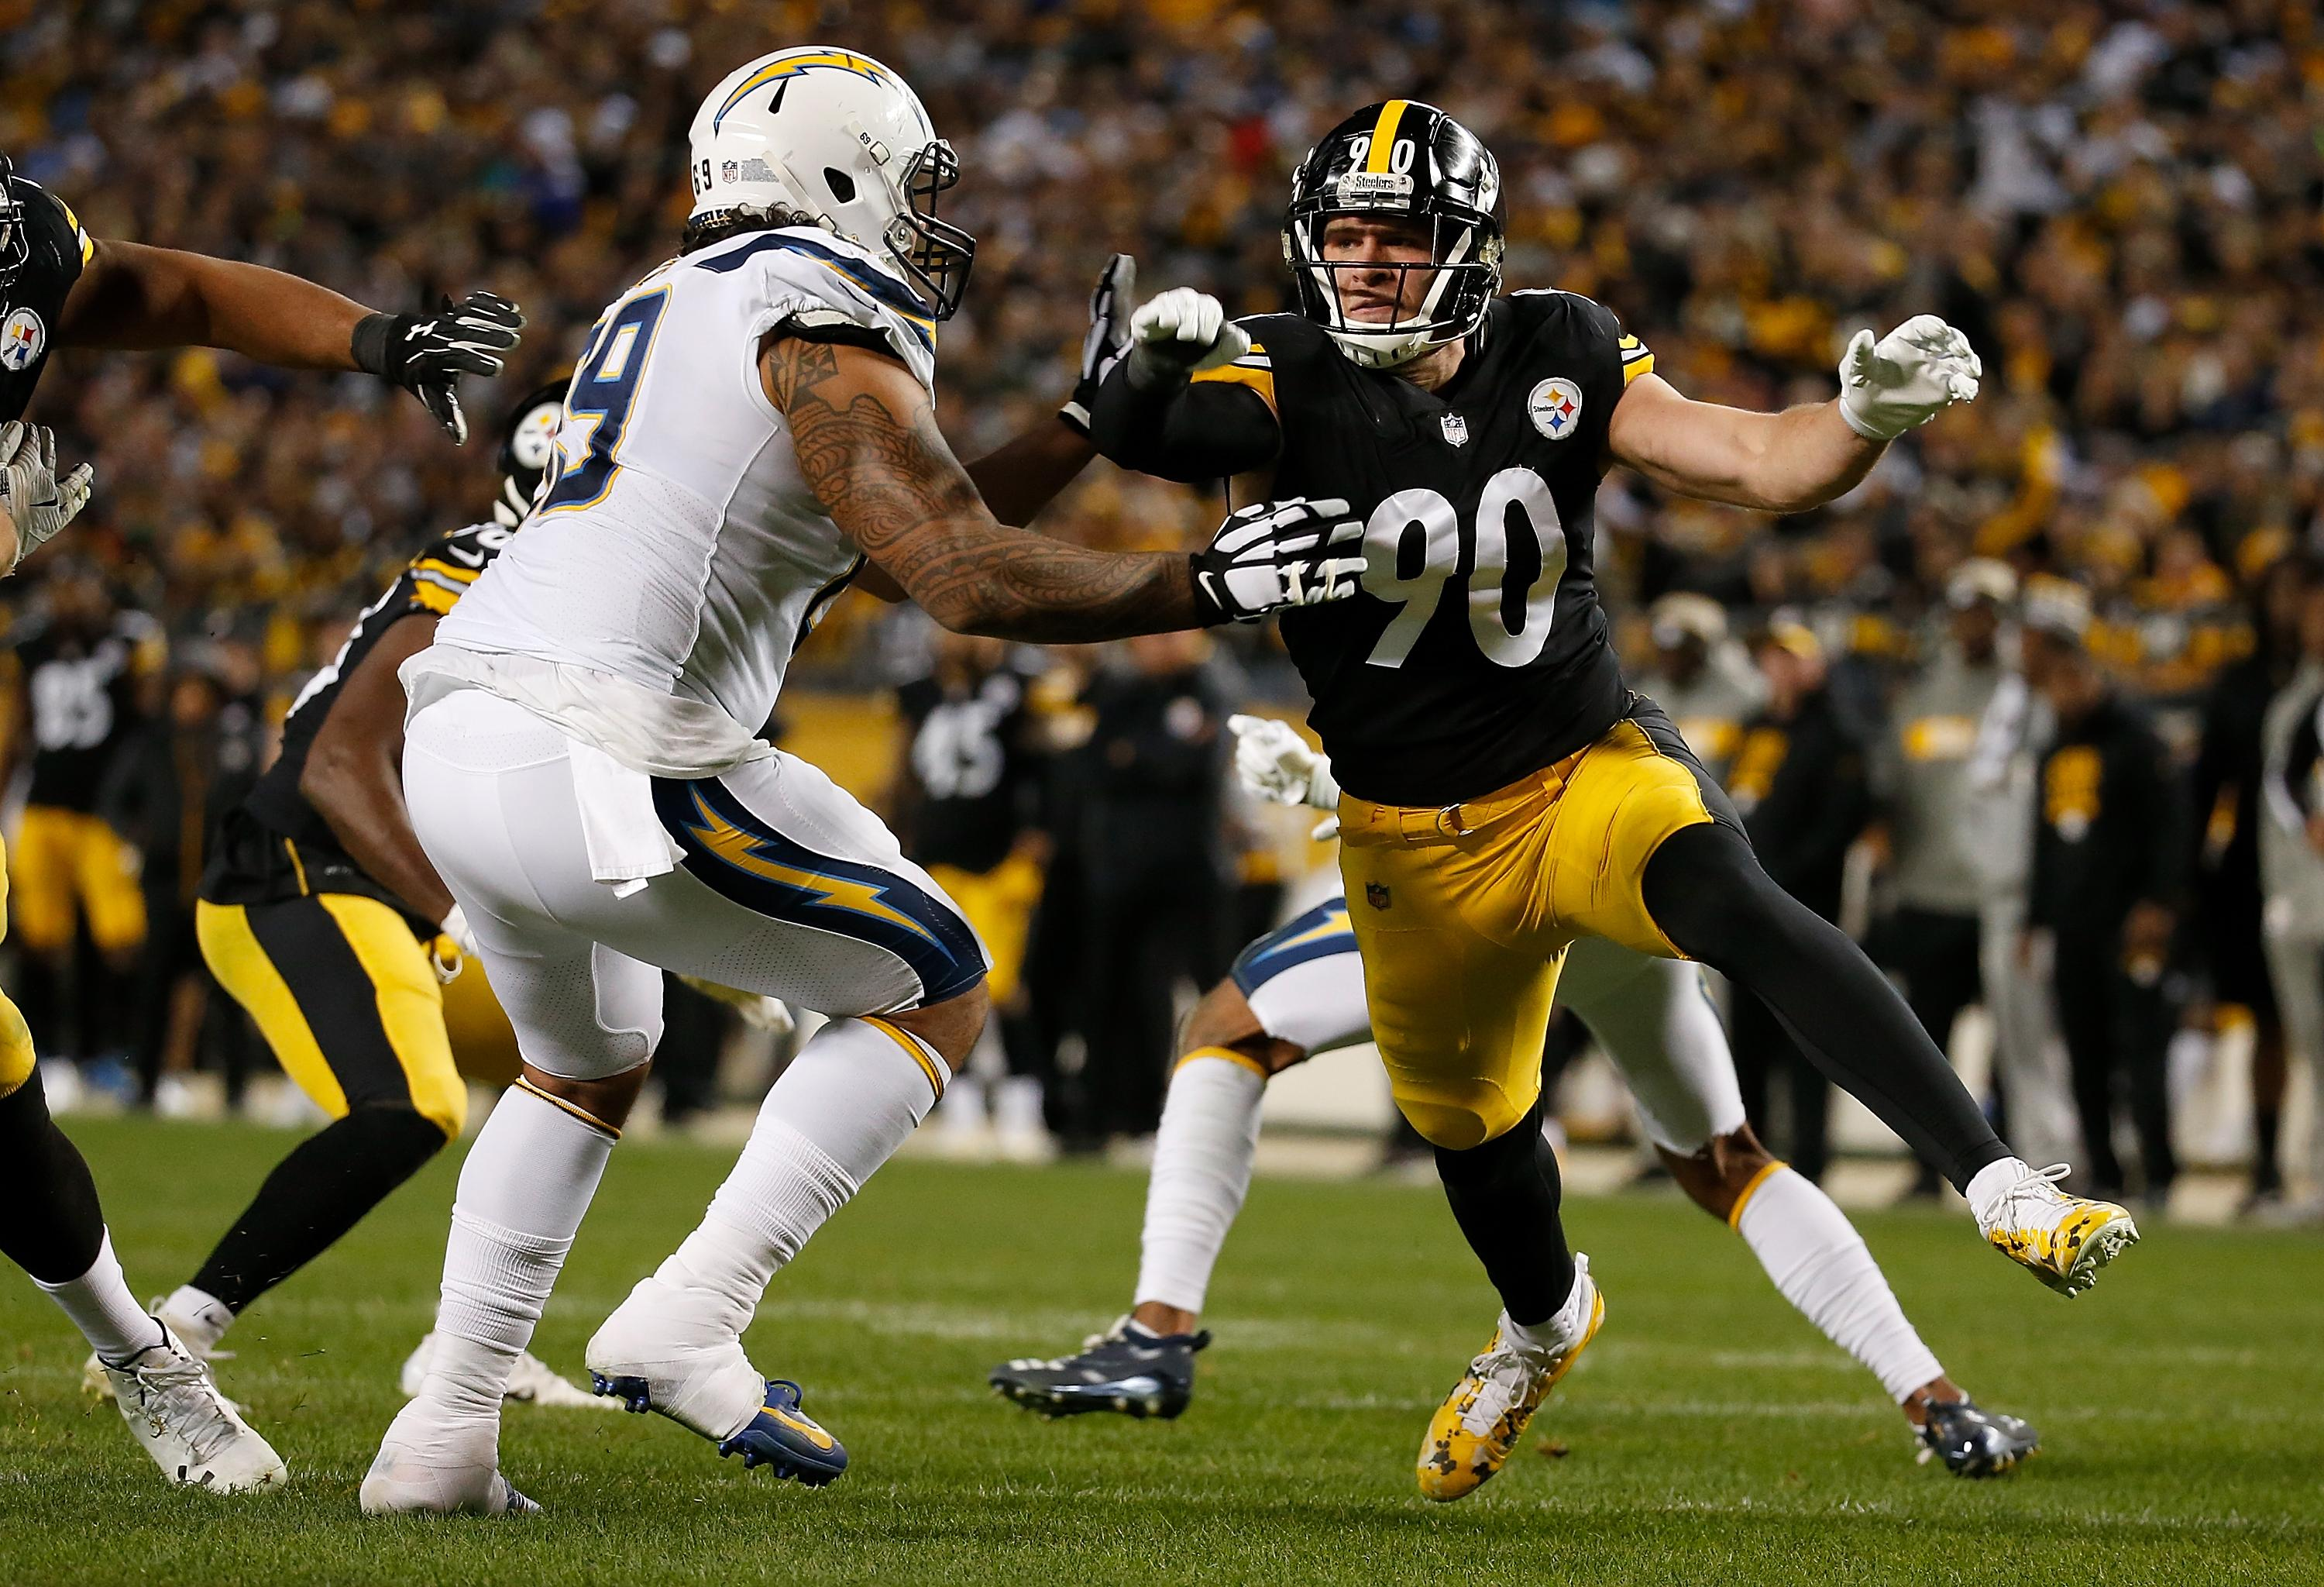 Miami Dolphins Vs Pittsburgh Steelers 2019 Prediction